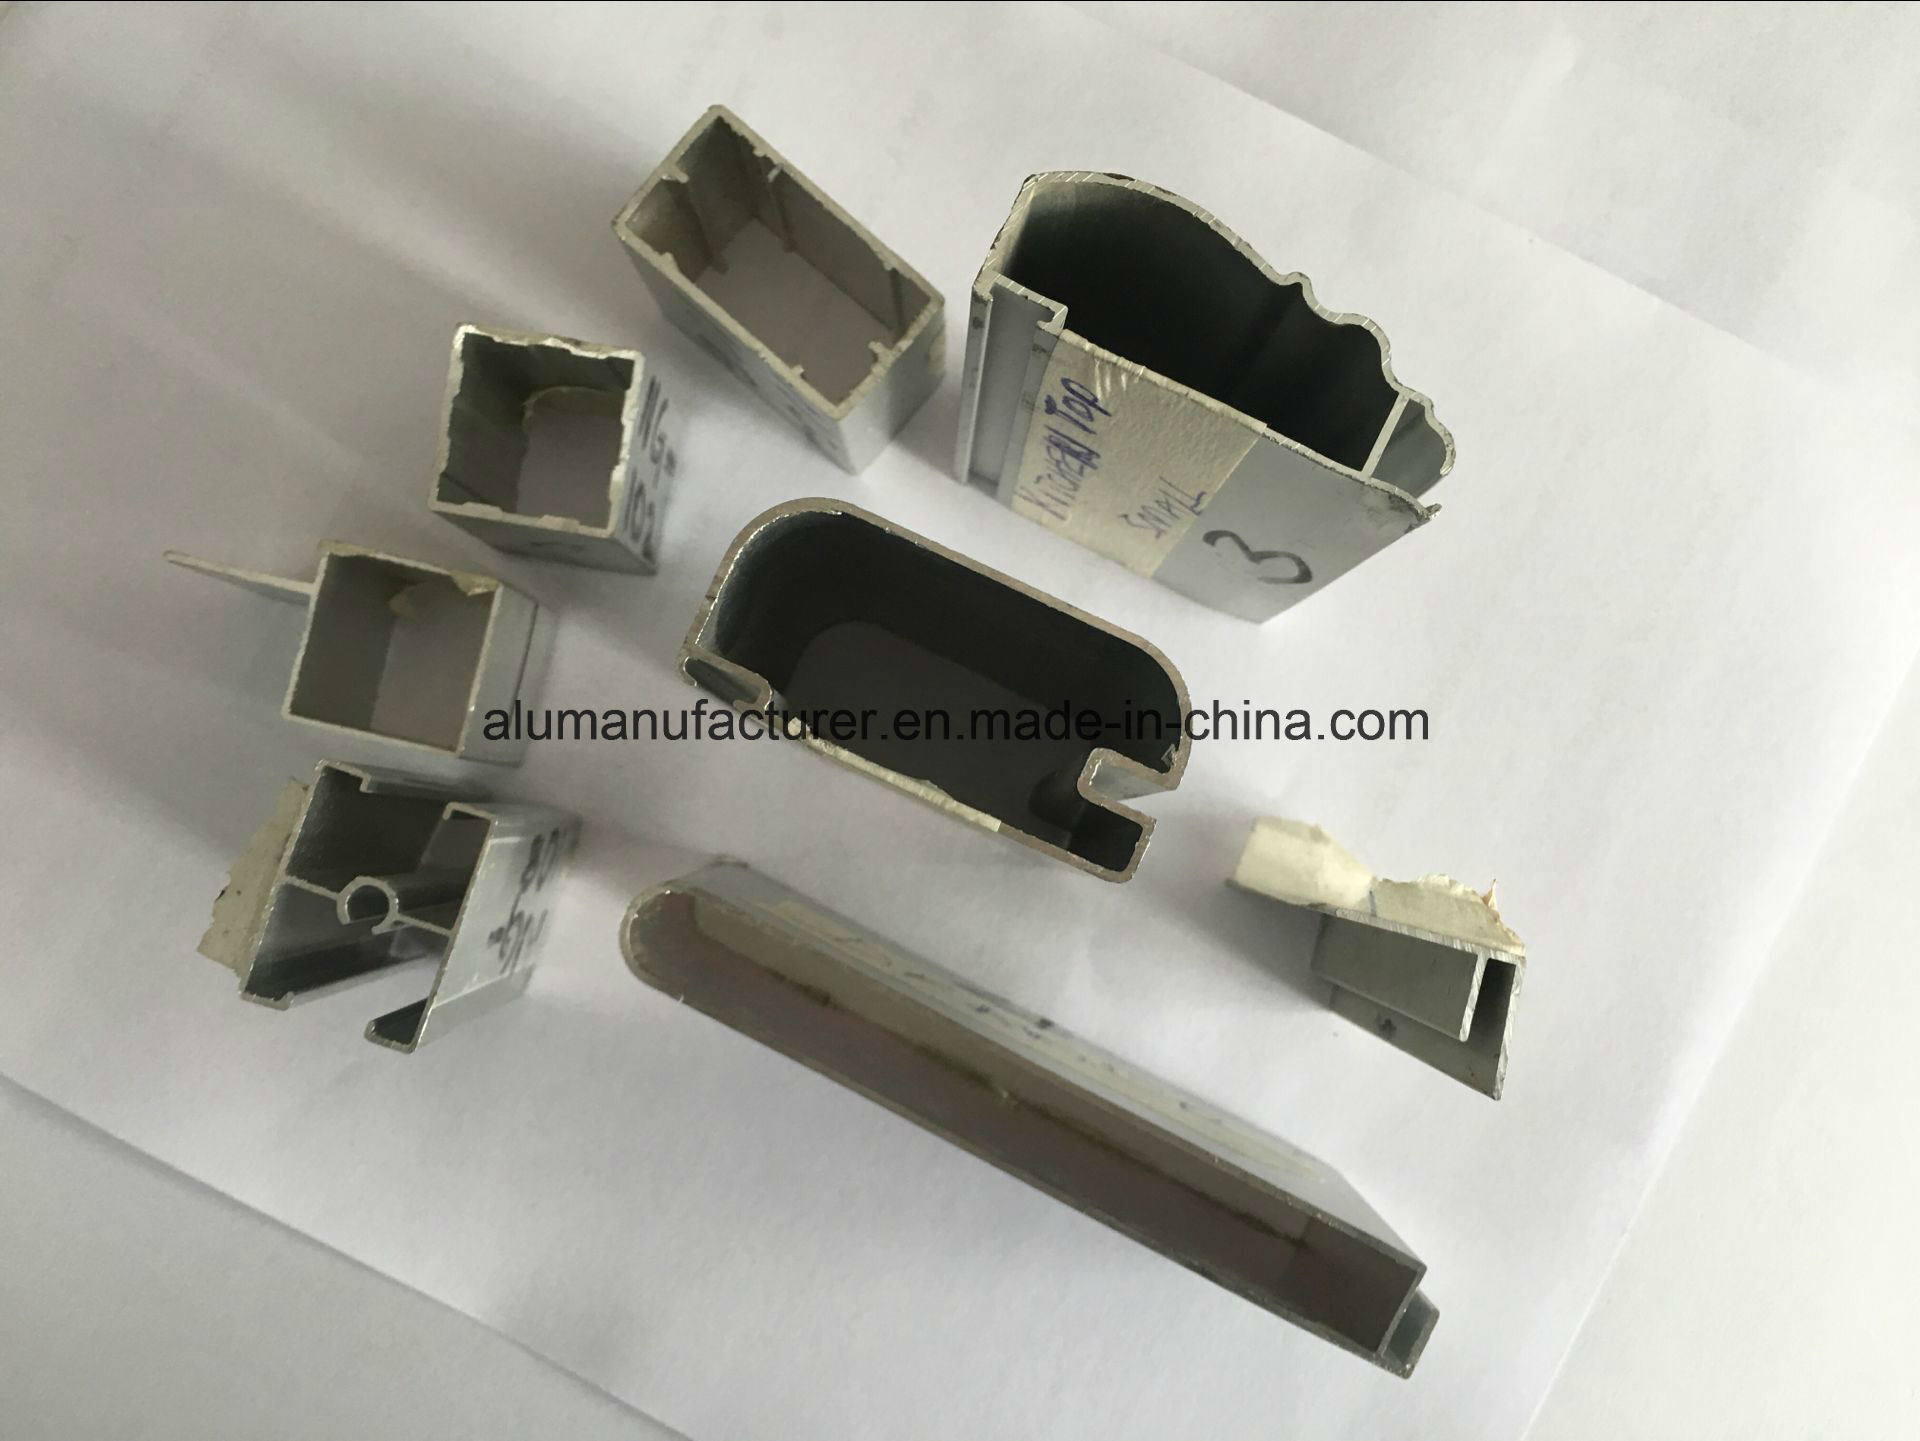 Liberia Aluminium Alloy Extrusion Profile for Door and Window pictures & photos